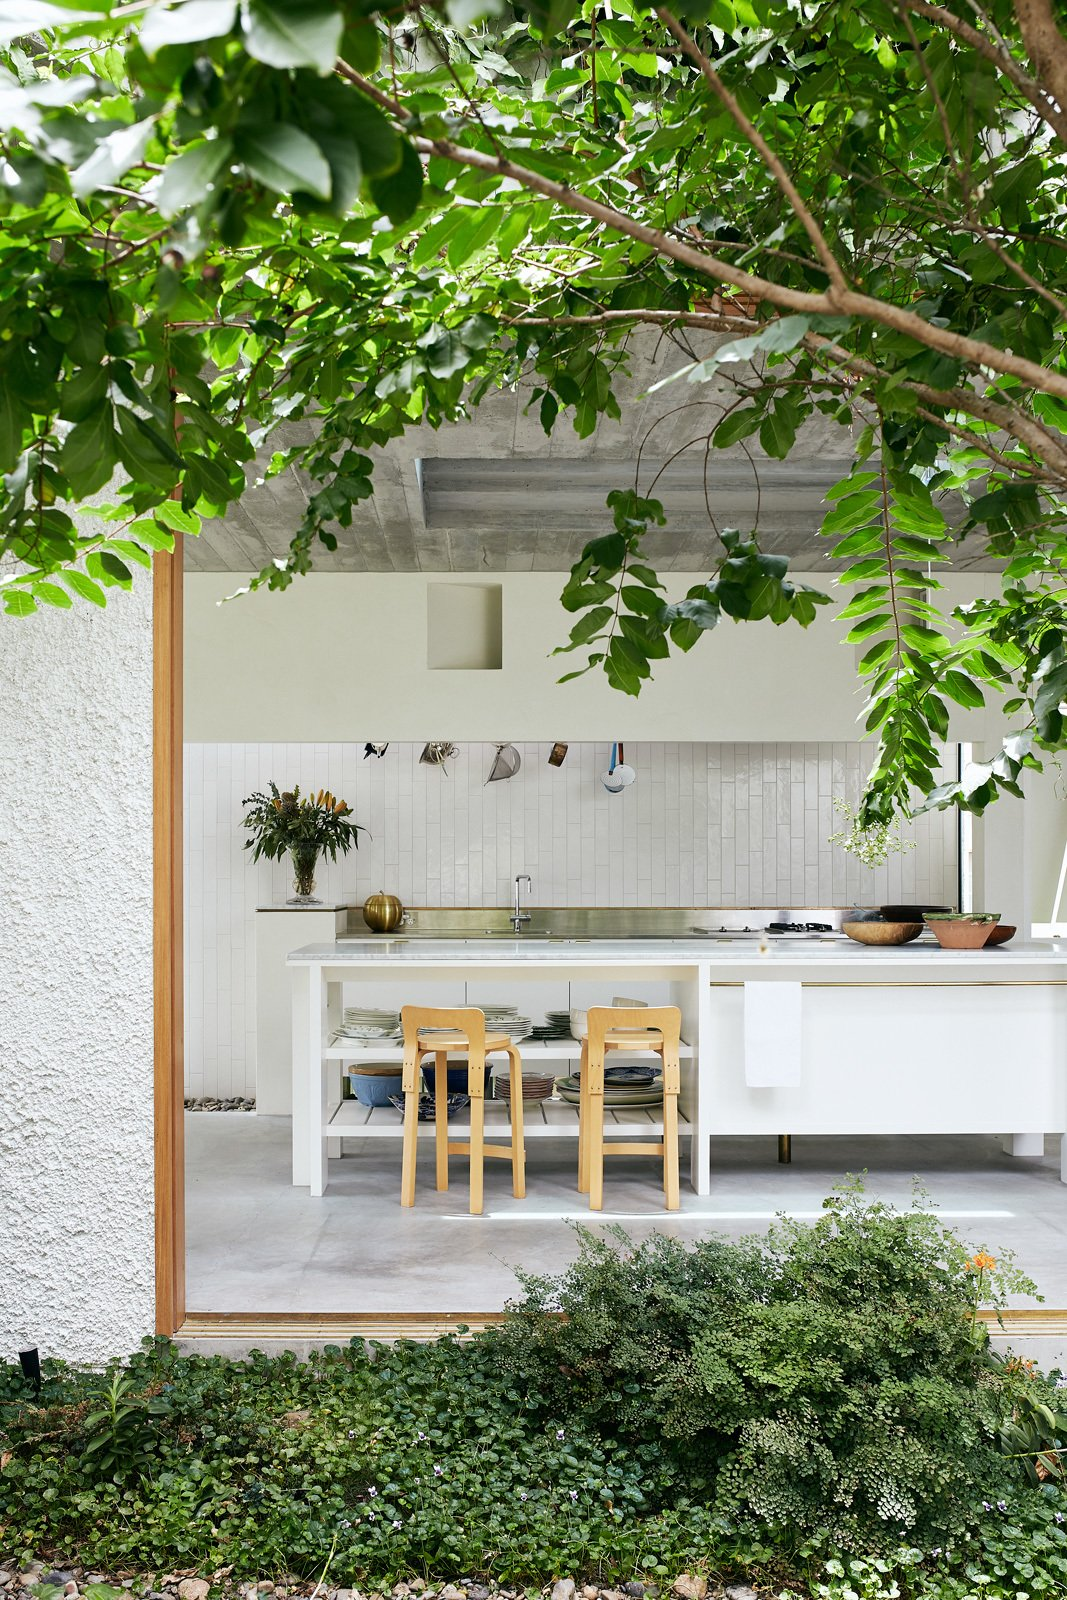 "Kitchen, White Cabinet, Subway Tile Backsplashe, Concrete Floor, Drop In Sink, Cooktops, and Marble Counter When tapped to redesign a darling cottage in Brisbane's Little Italy, the team at Cavill Architects was inspired by ""architecture with veneration for the past."" As a result, the newly remodeled dwelling now pays homage to the Italian migrant workers' housing that was a crucial part of the Australian city's post-war settlement. The open kitchen has a warm Mediterranean-like feel and overlooks the central garden.   Photos from An Australian Cottage Gets a Mediterranean-Inspired Revamp"